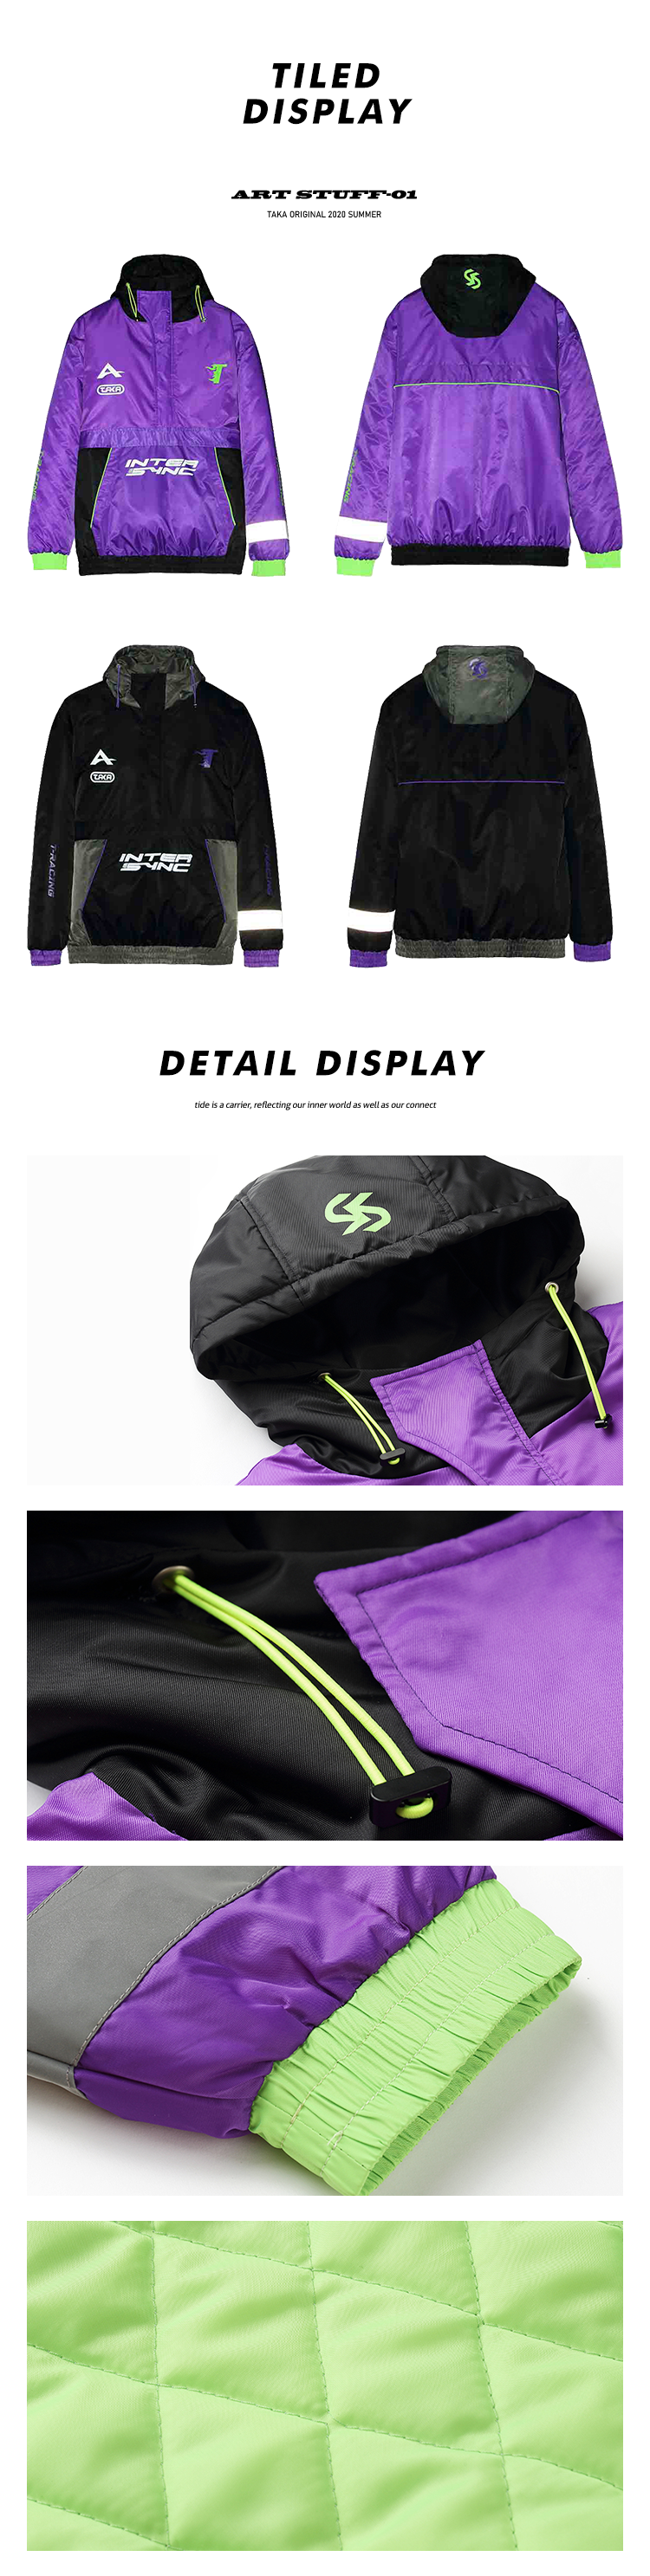 Treat yourself to a new jacket. Let's face it, you probably don't have a hooded jacket. Now is the time, so take your chance. Featuring a drawstring hood, long sleeves, a graphic print and kangaroo pockets.